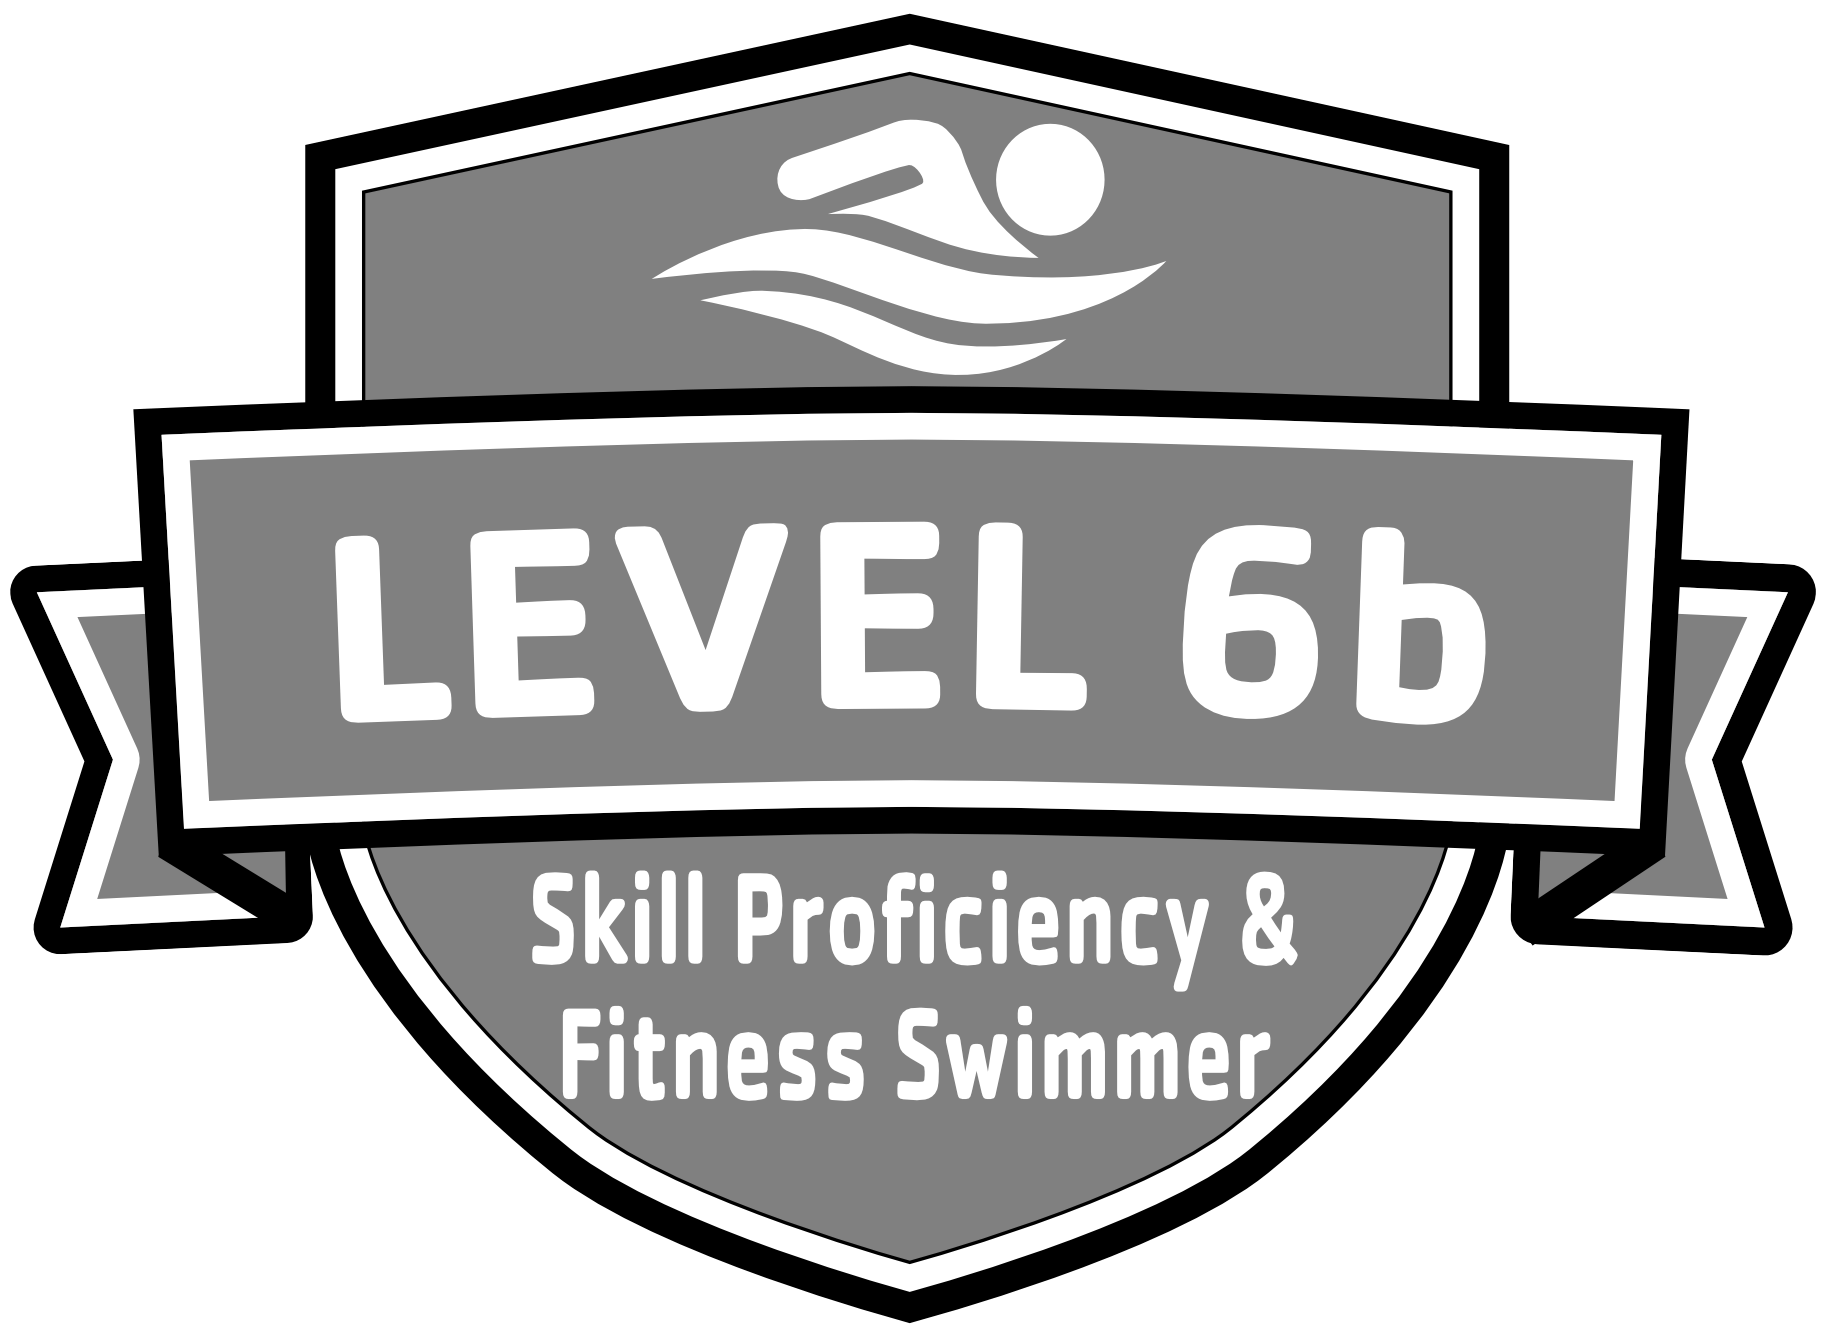 Swim Lesson Level 6b